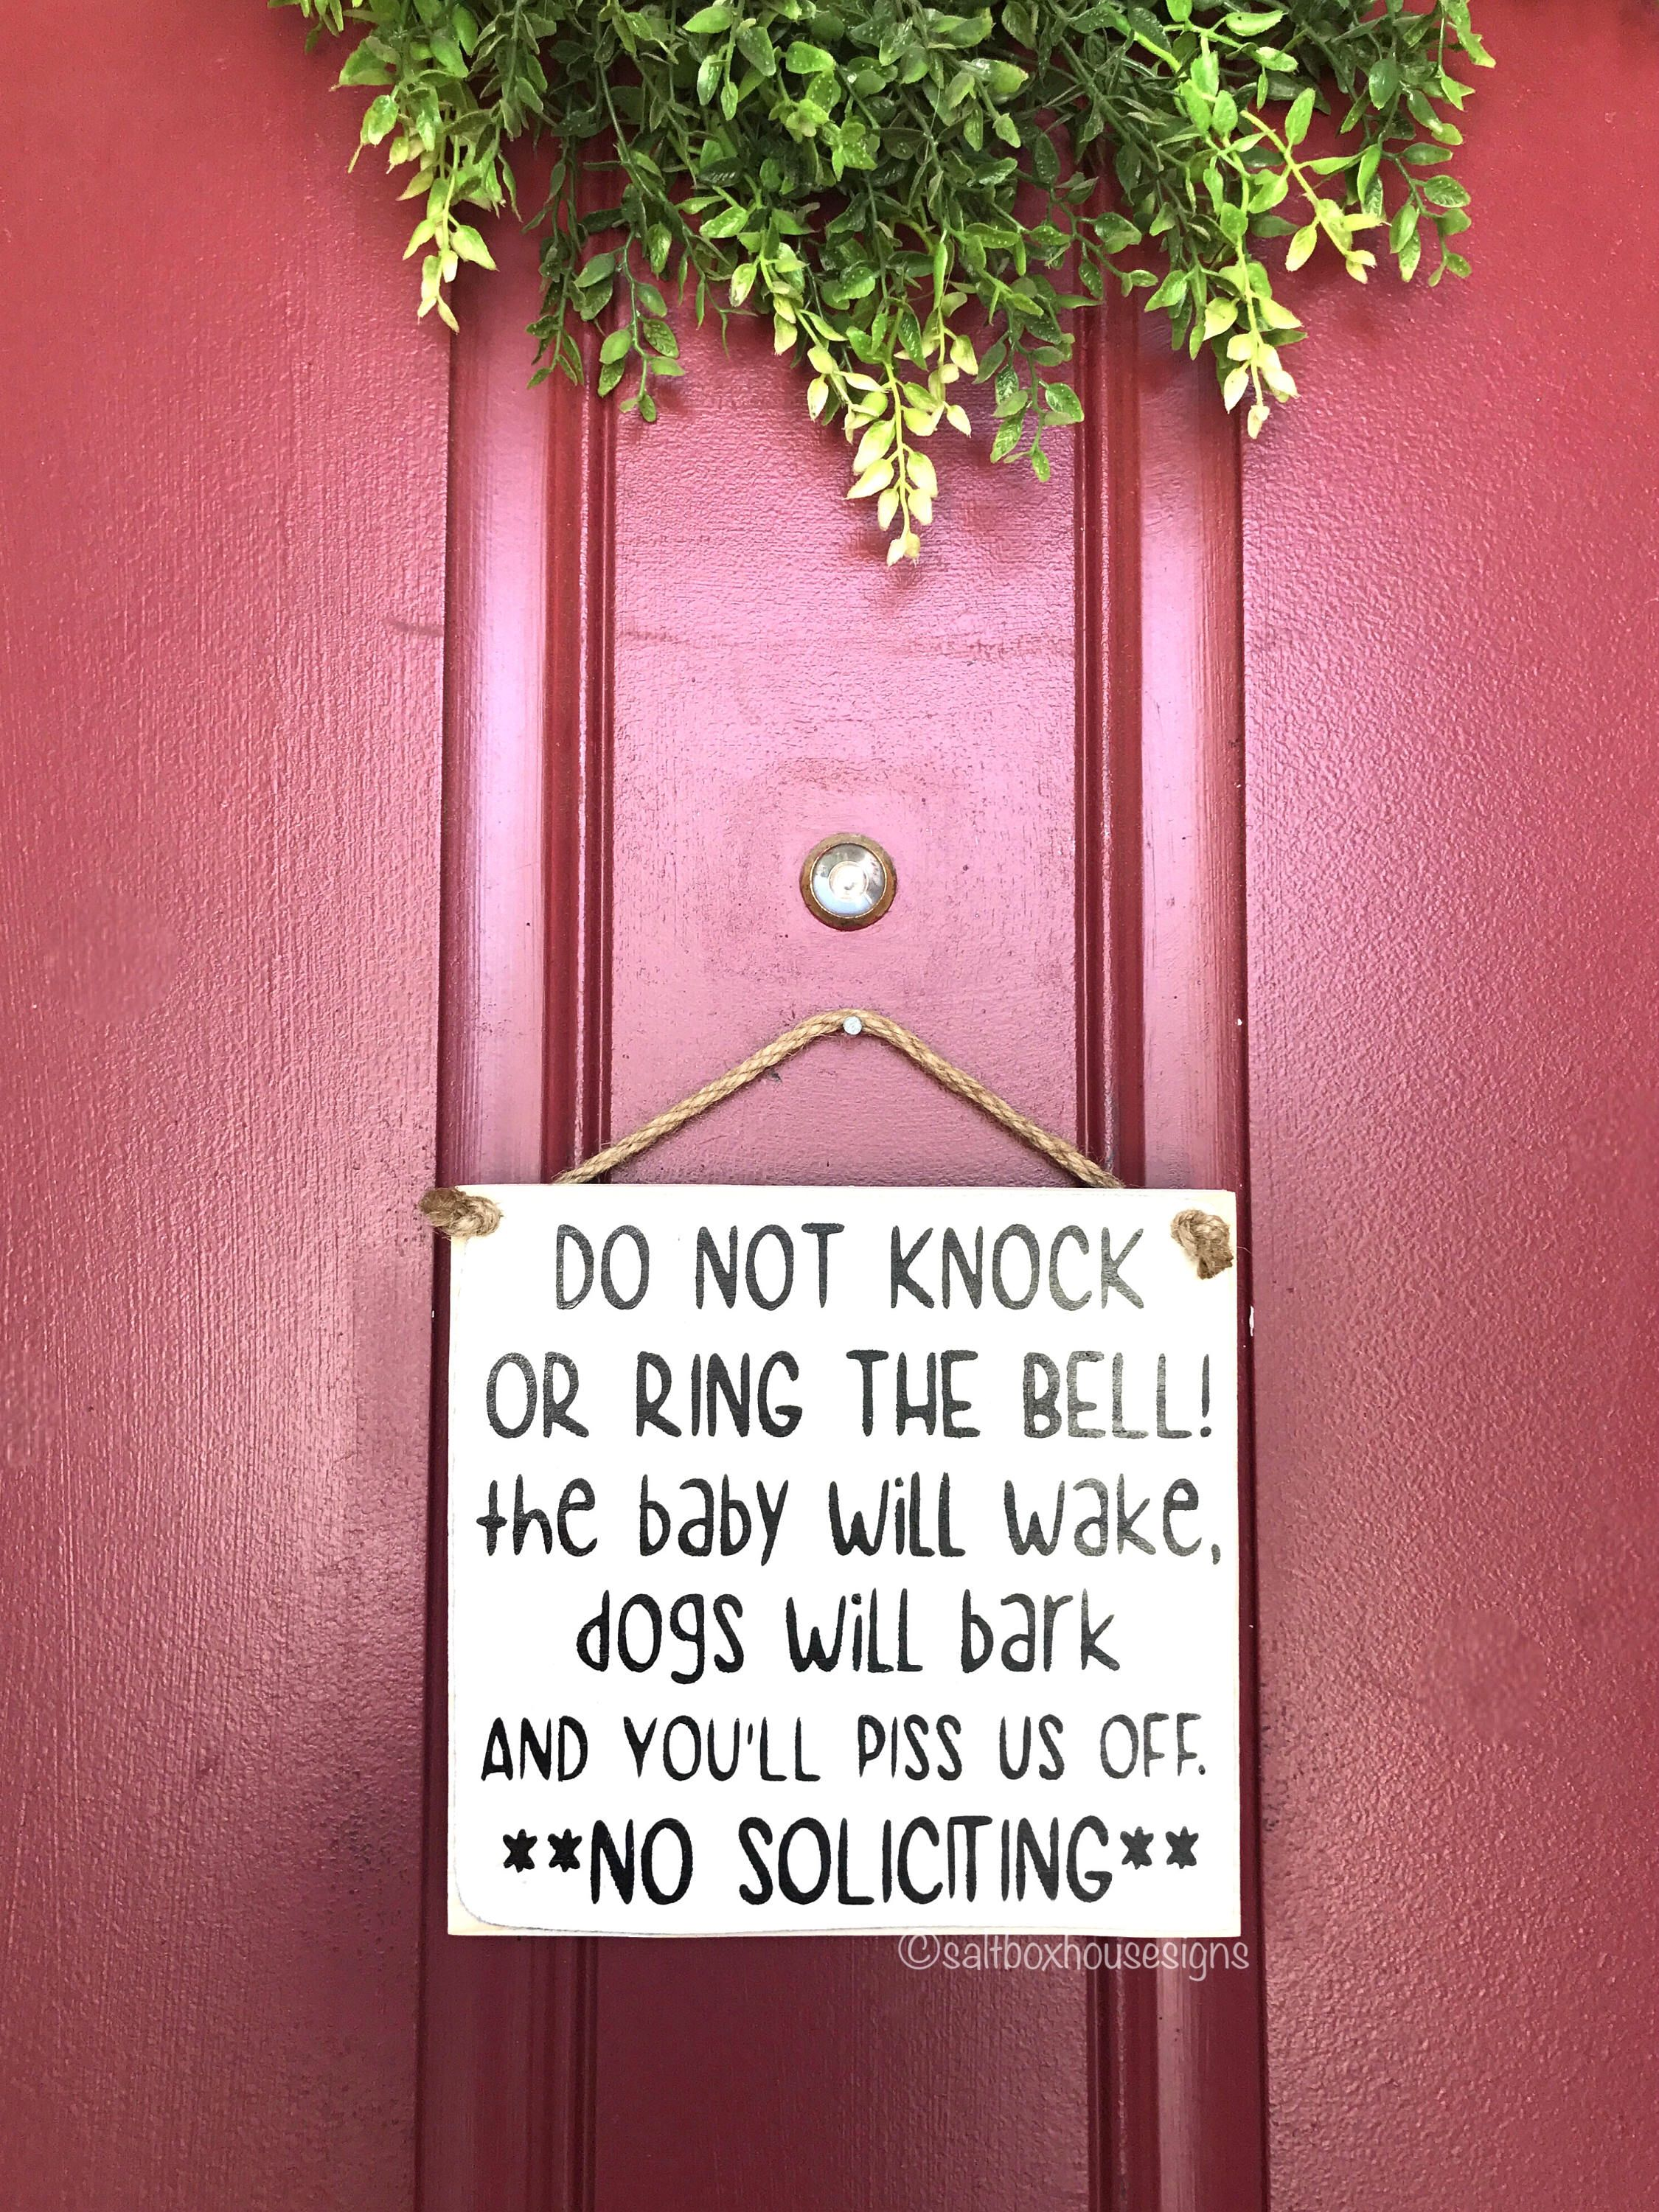 Youull piss us off door signs lol my signs pinterest